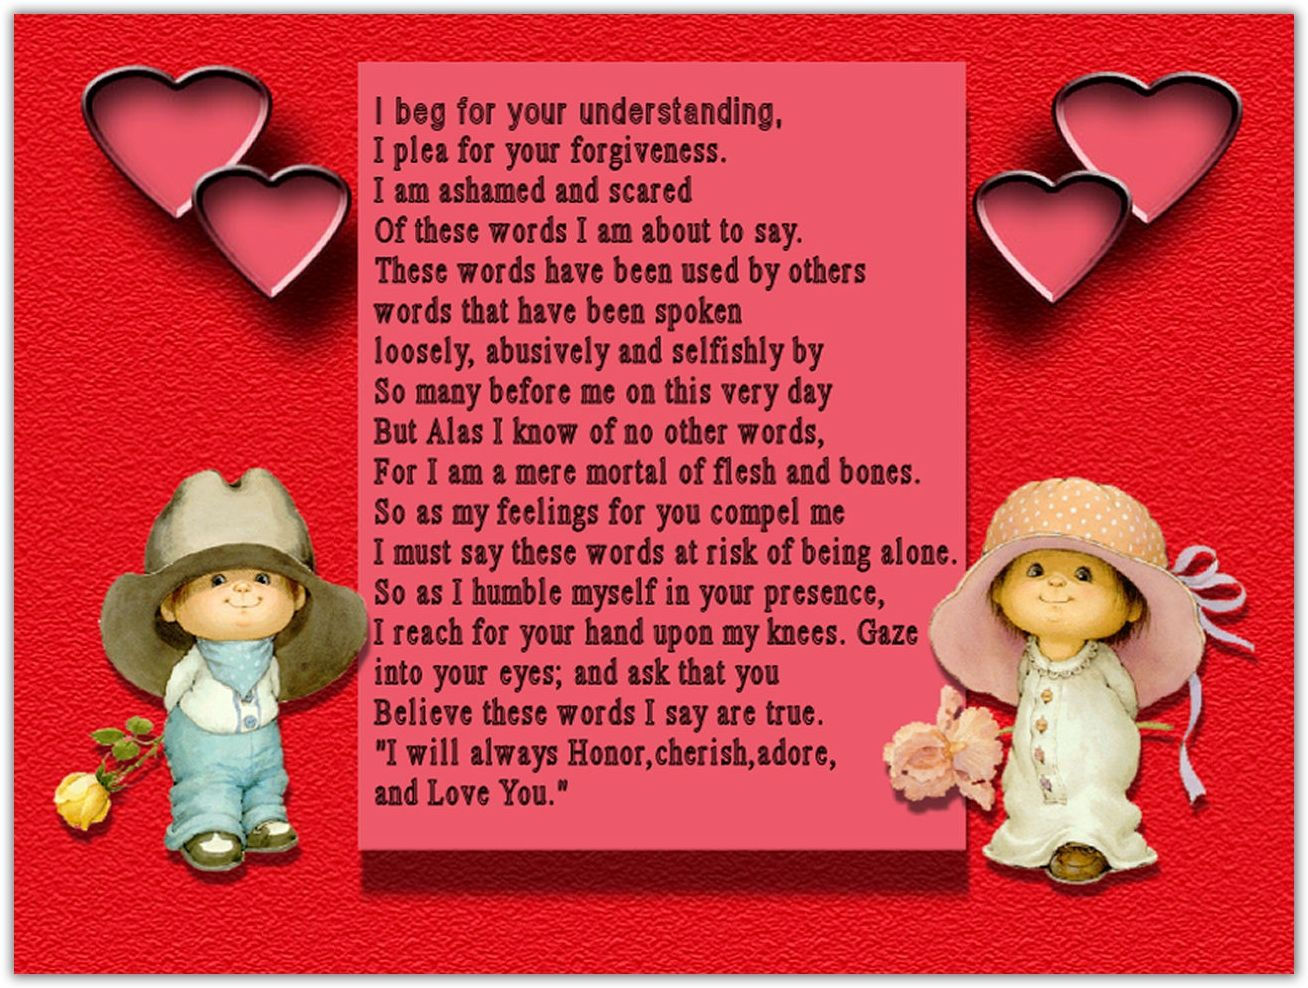 christian valentine poem you incredible christian valentine s day poems funny valentine love poems - Christian Valentine Poems